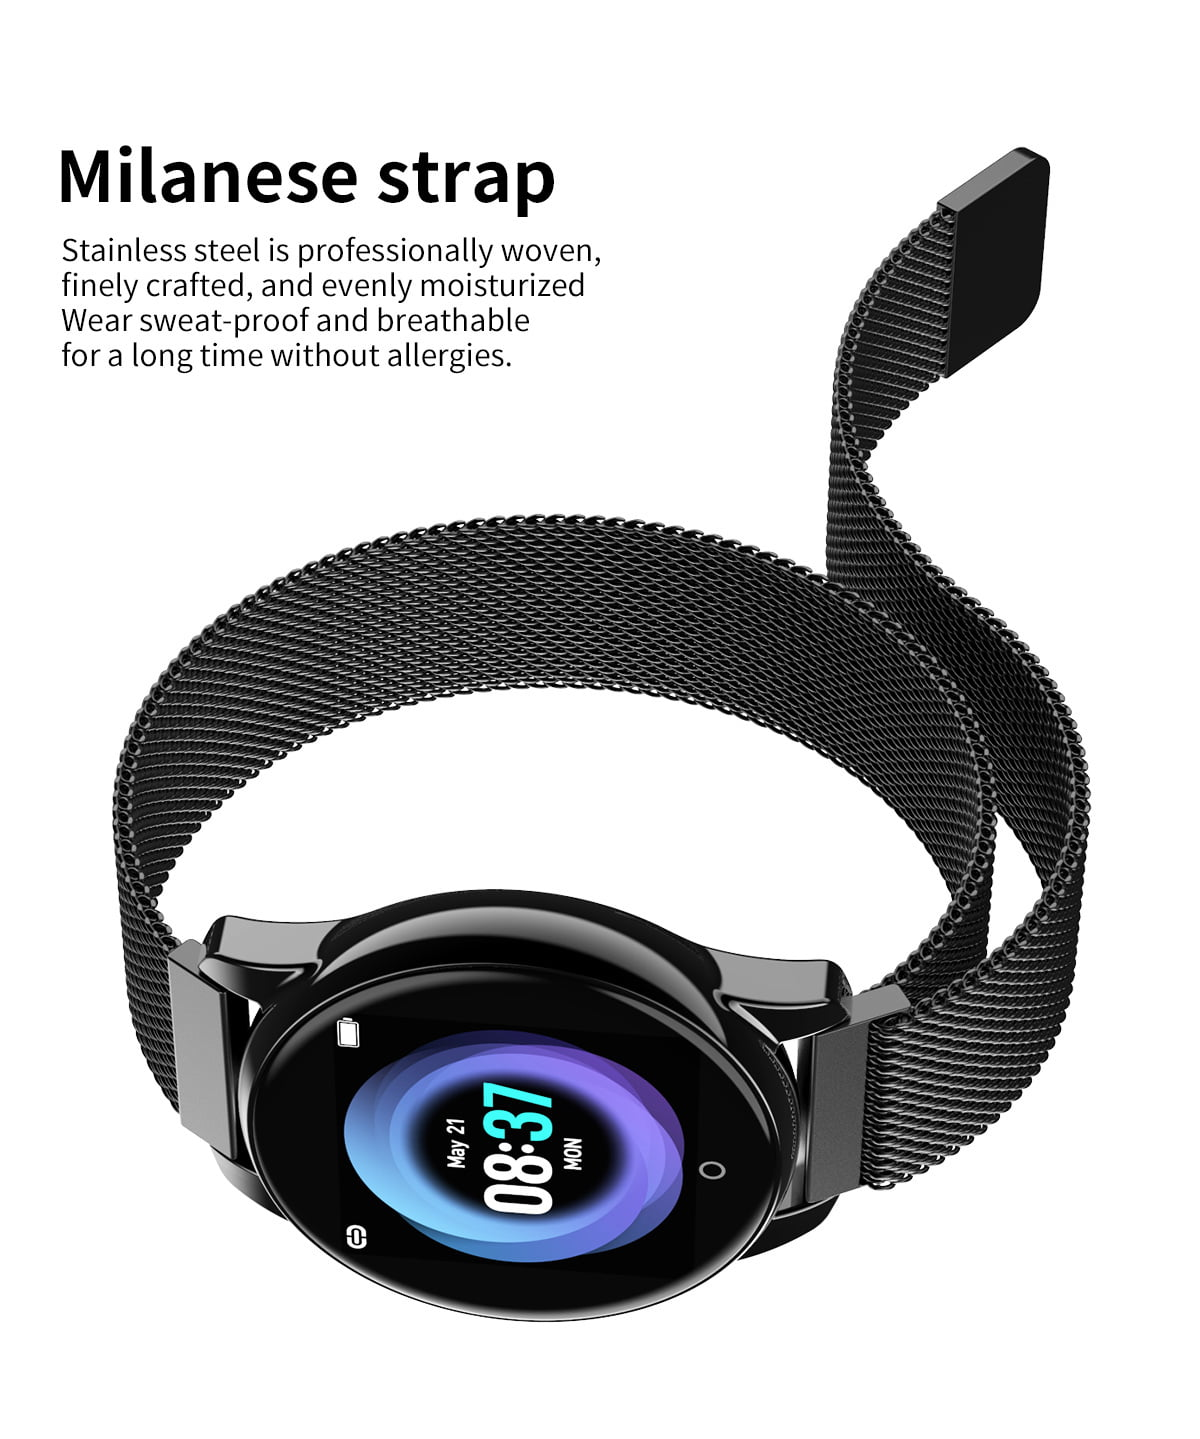 Watch 4 smart watch hd color screen wristband (2)